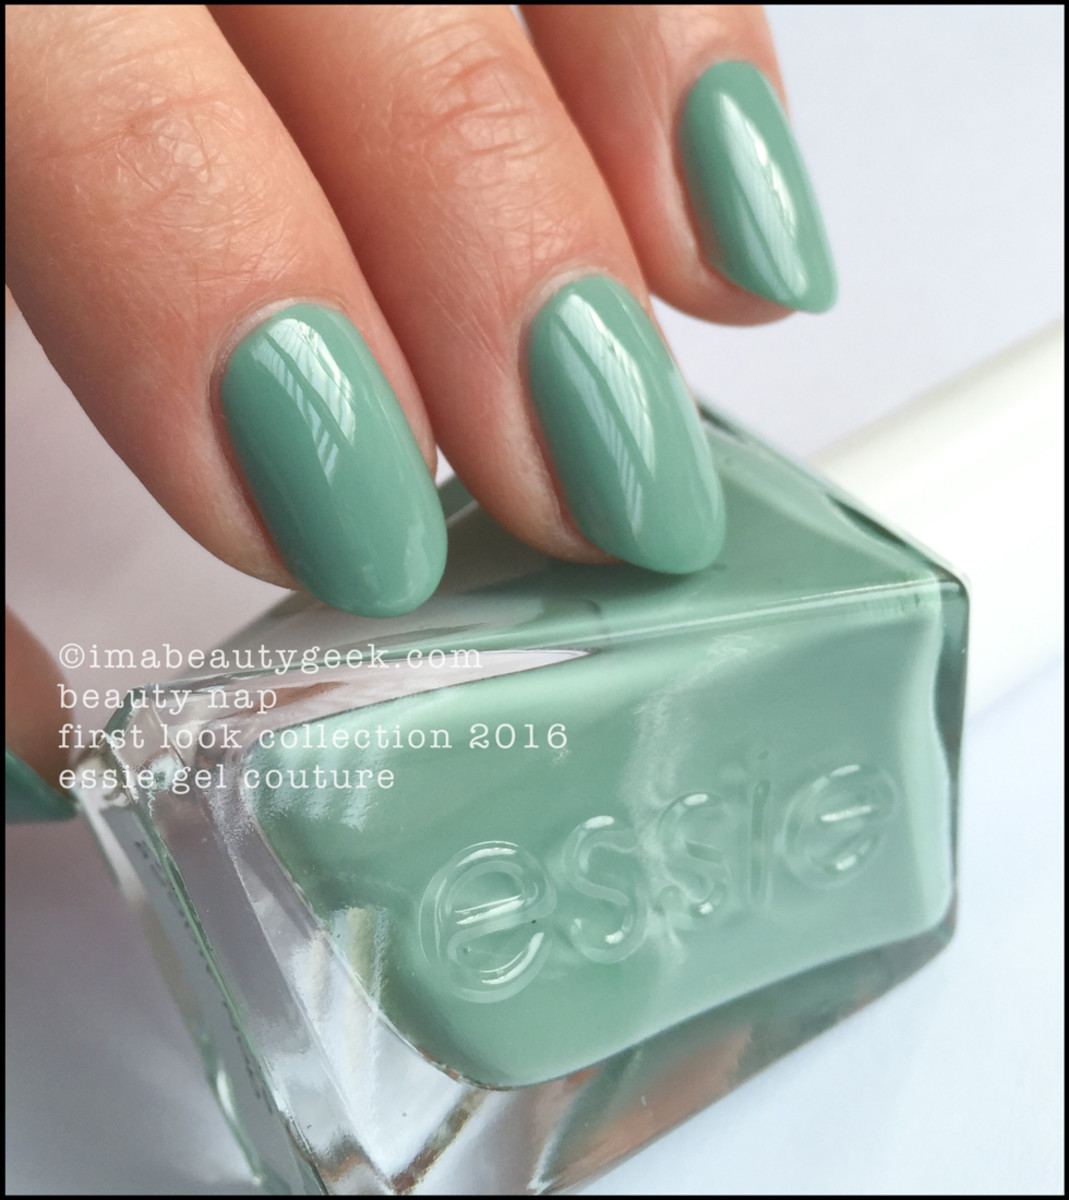 Essie Gel Couture Swatches Review_Essie Beauty Nap